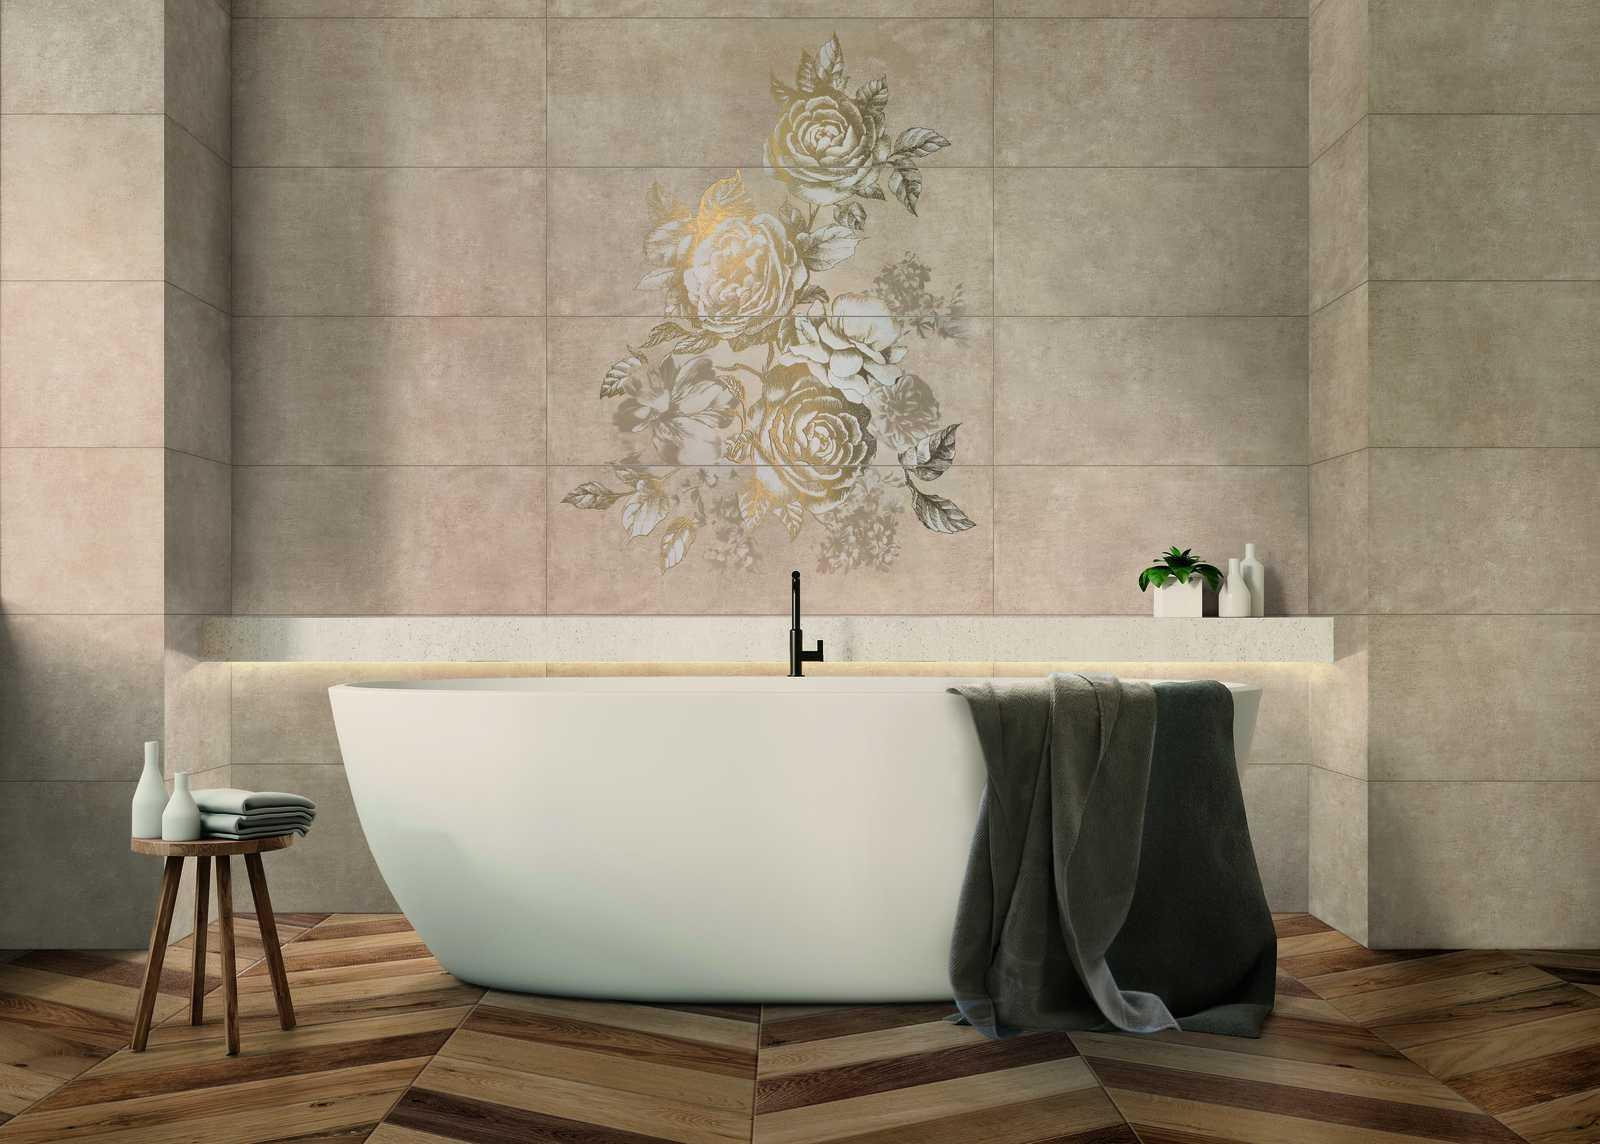 Fresco collection: Plaster Effect Ceramic Tiles | Marazzi on